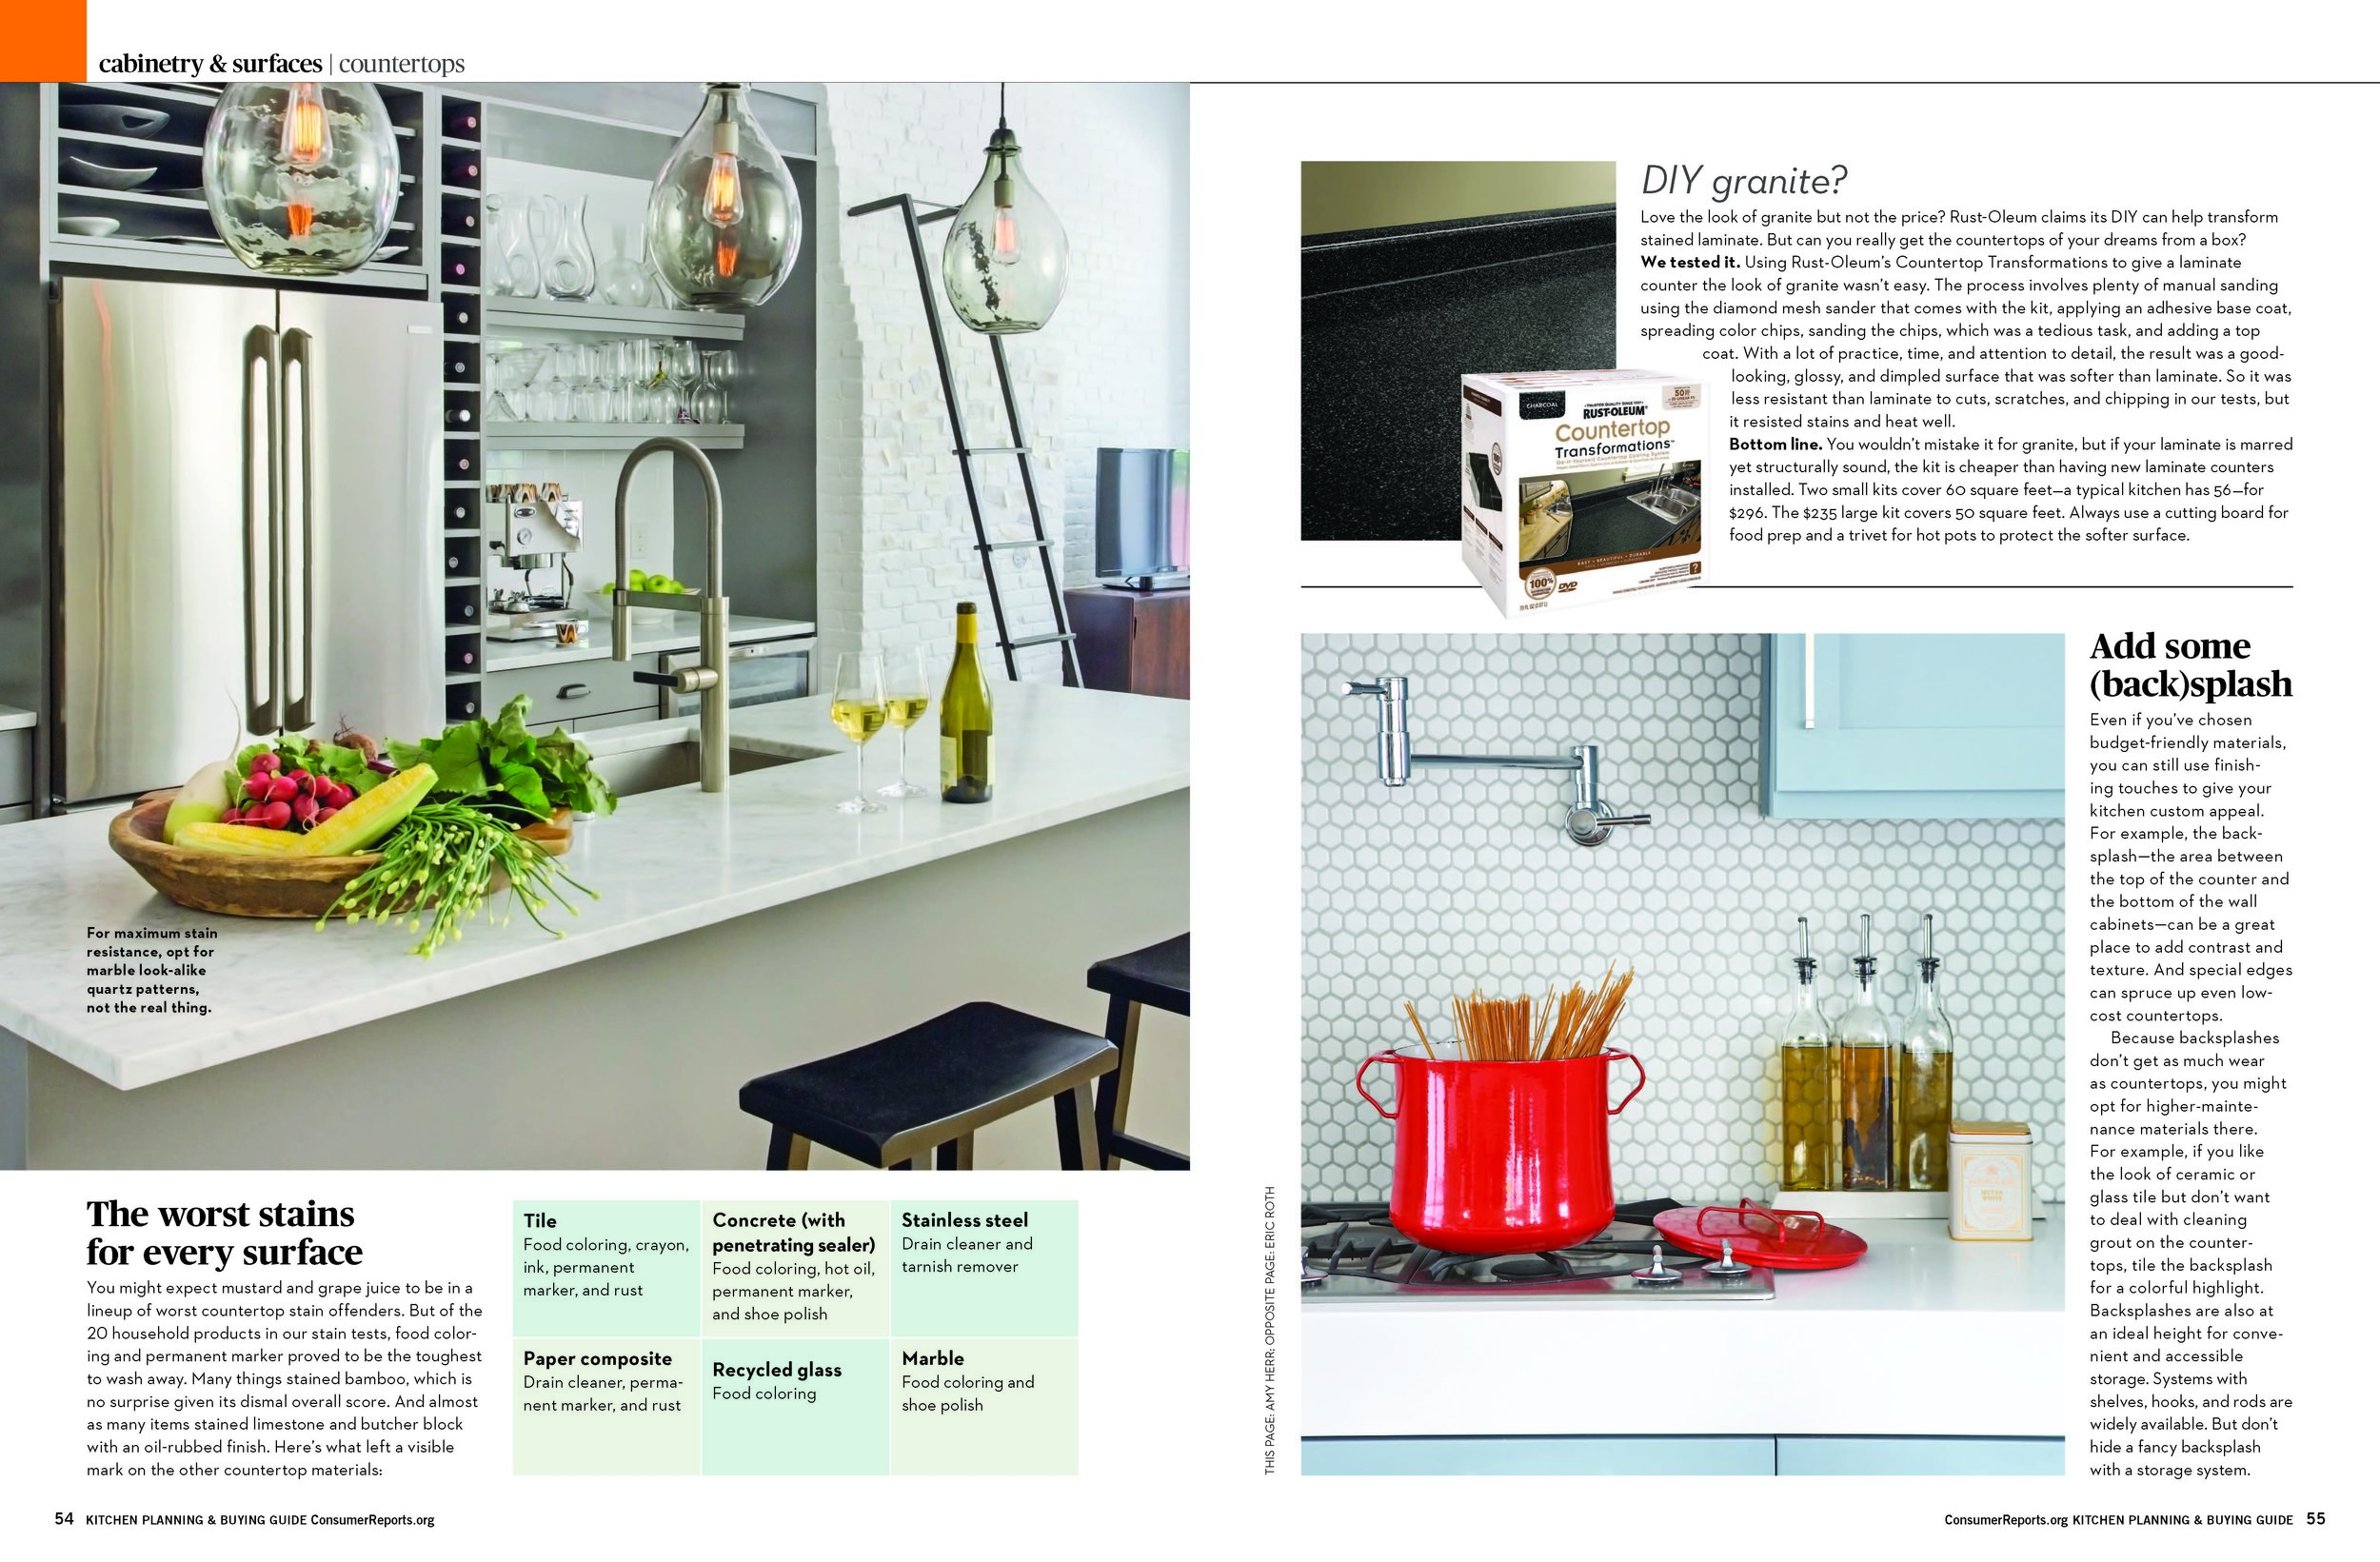 Consumer Reports 052-057 Countertops_Part1_Page_2.jpg